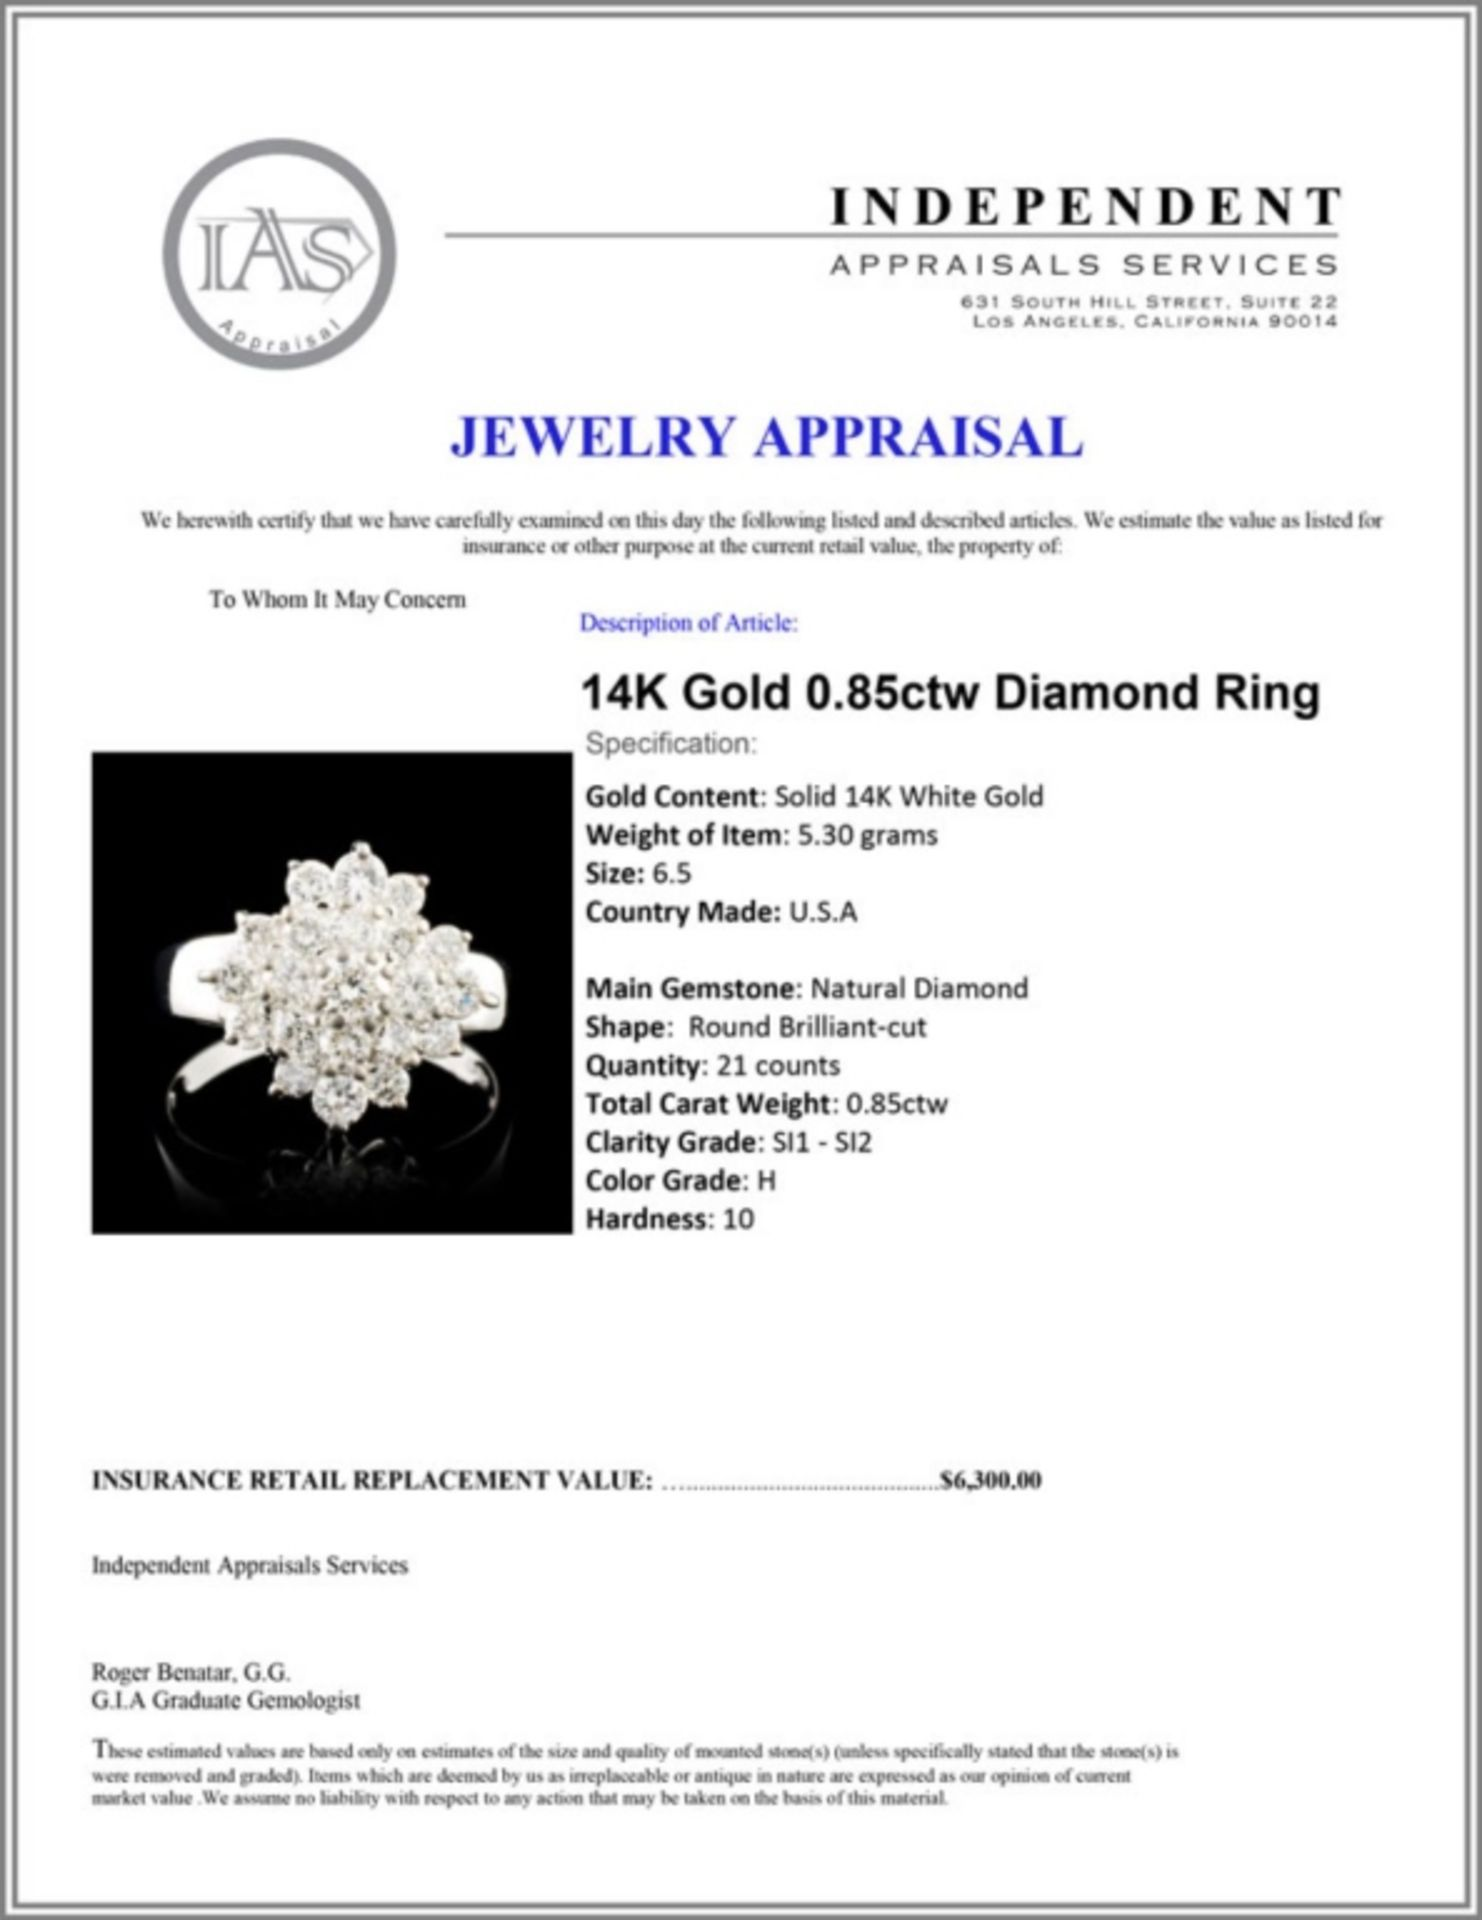 14K Gold 0.85ctw Diamond Ring - Image 5 of 5